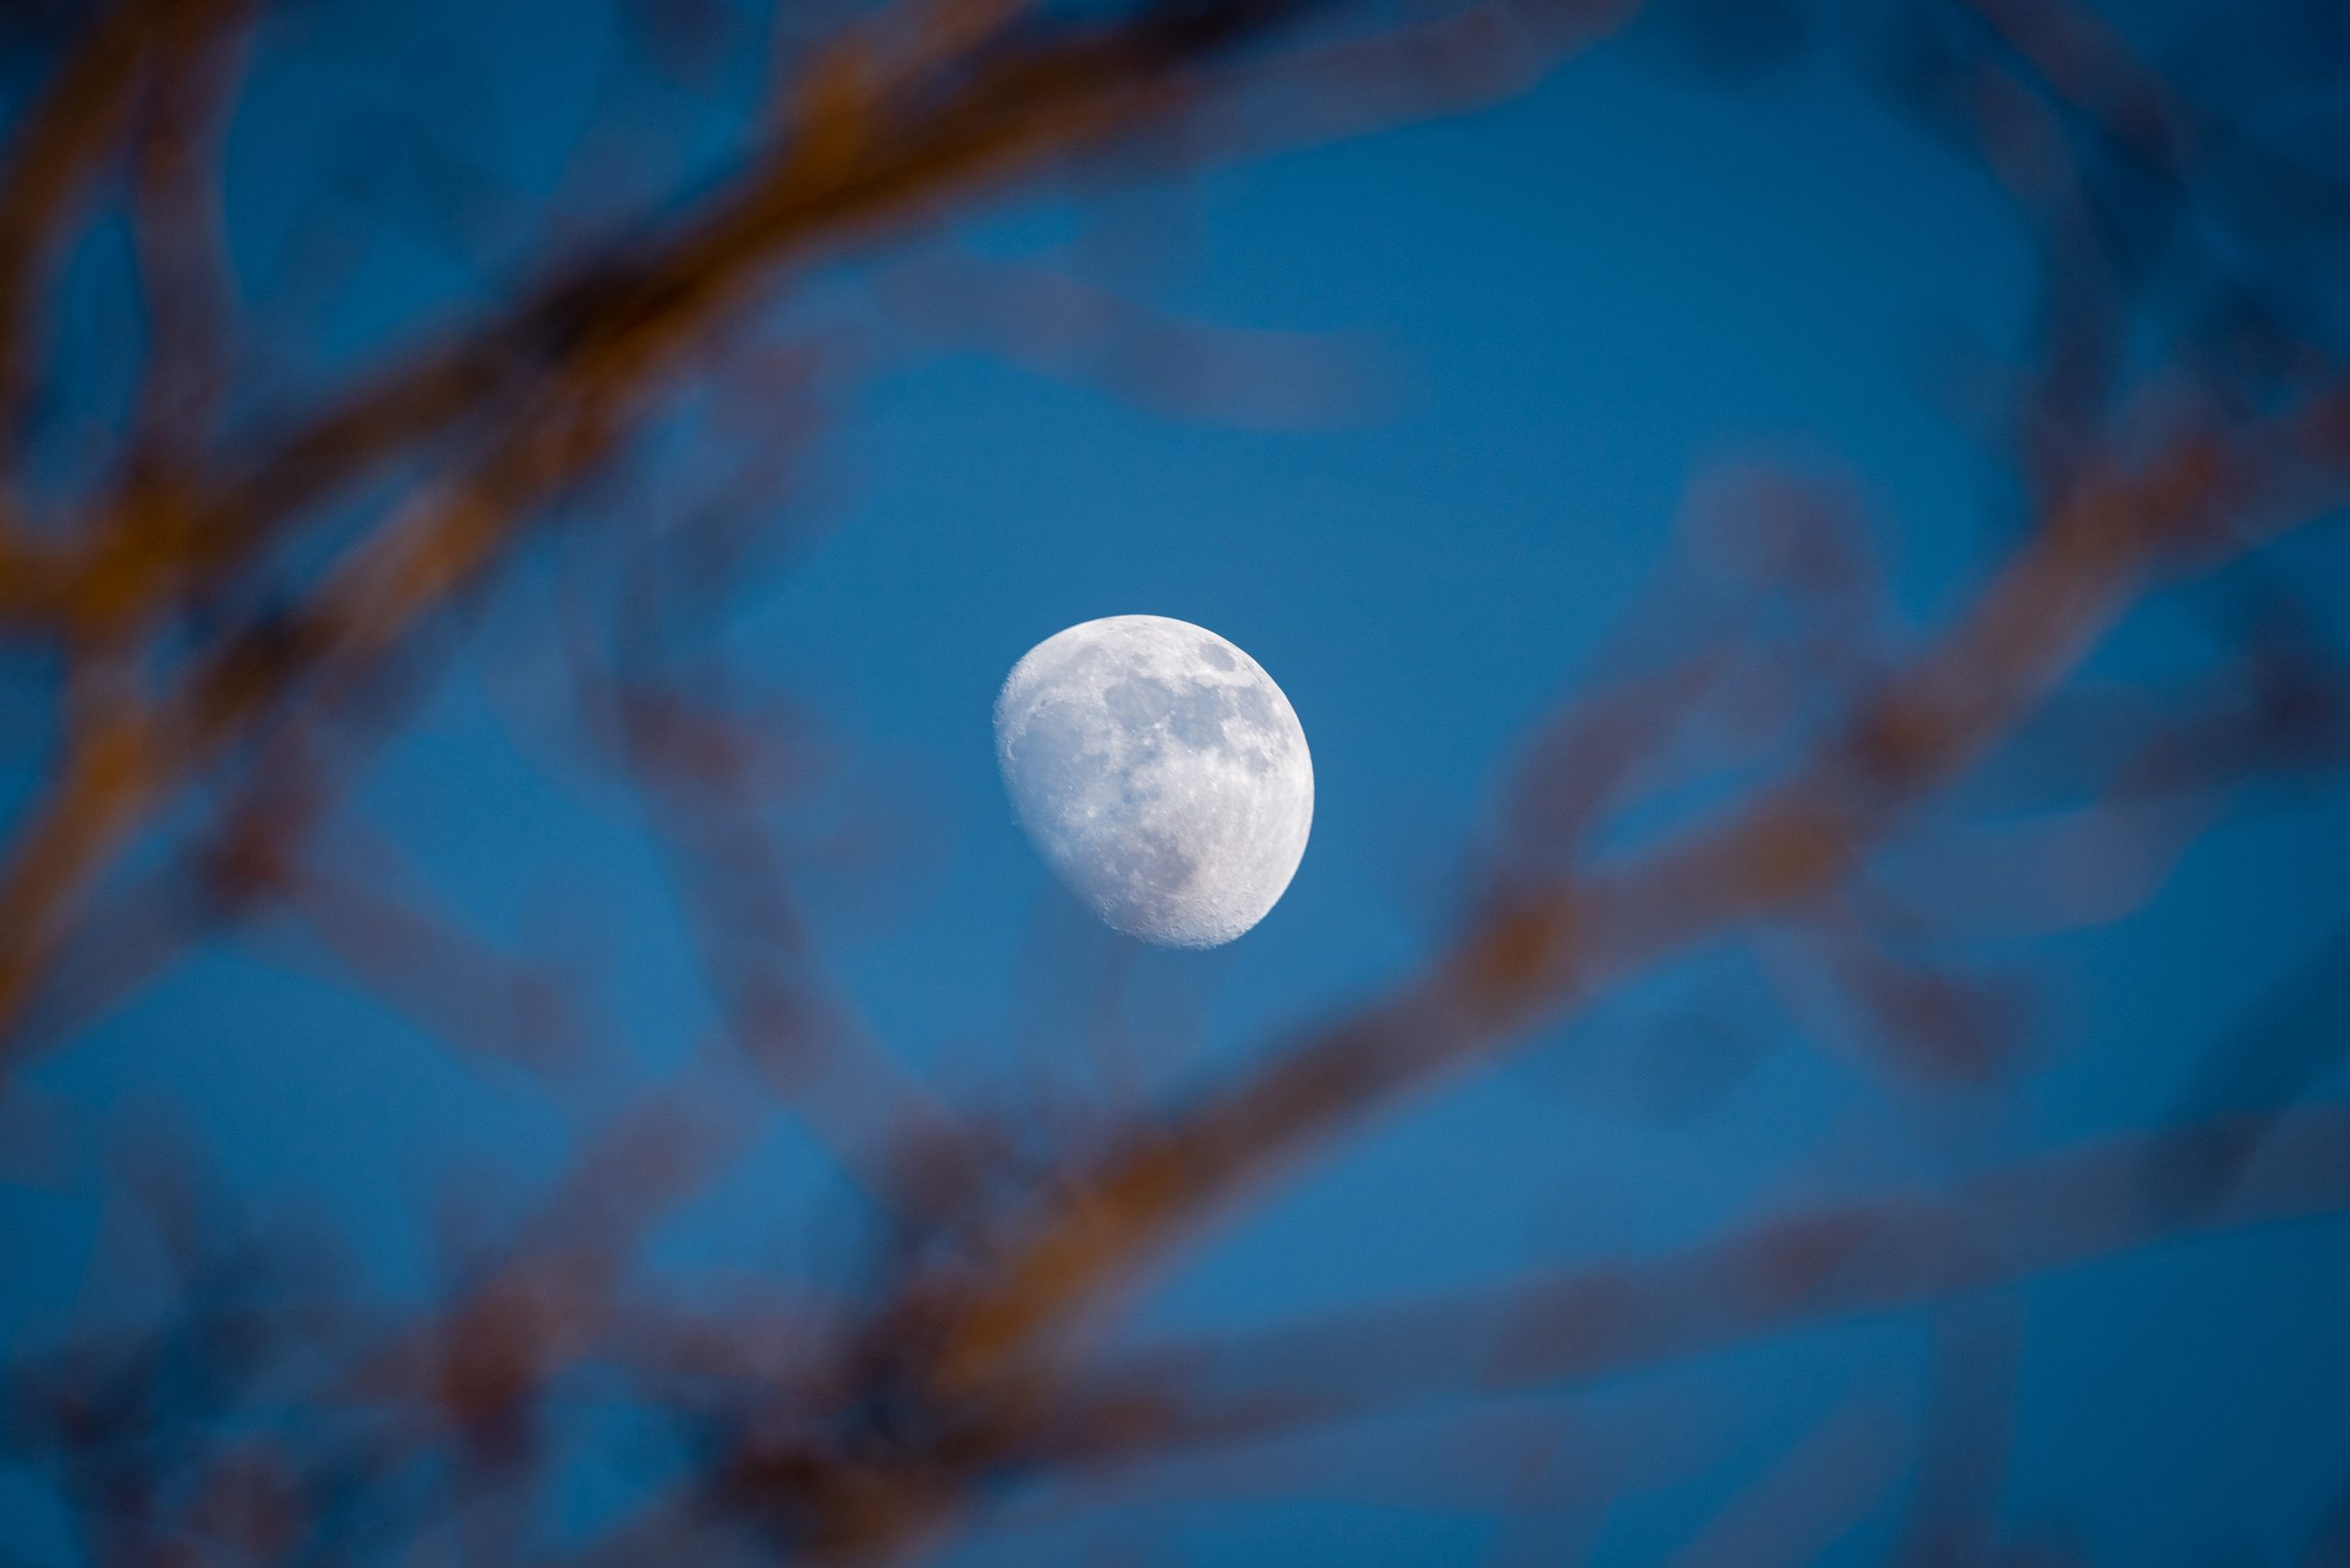 The moon shines against a blue sky through tree branches at dusk.